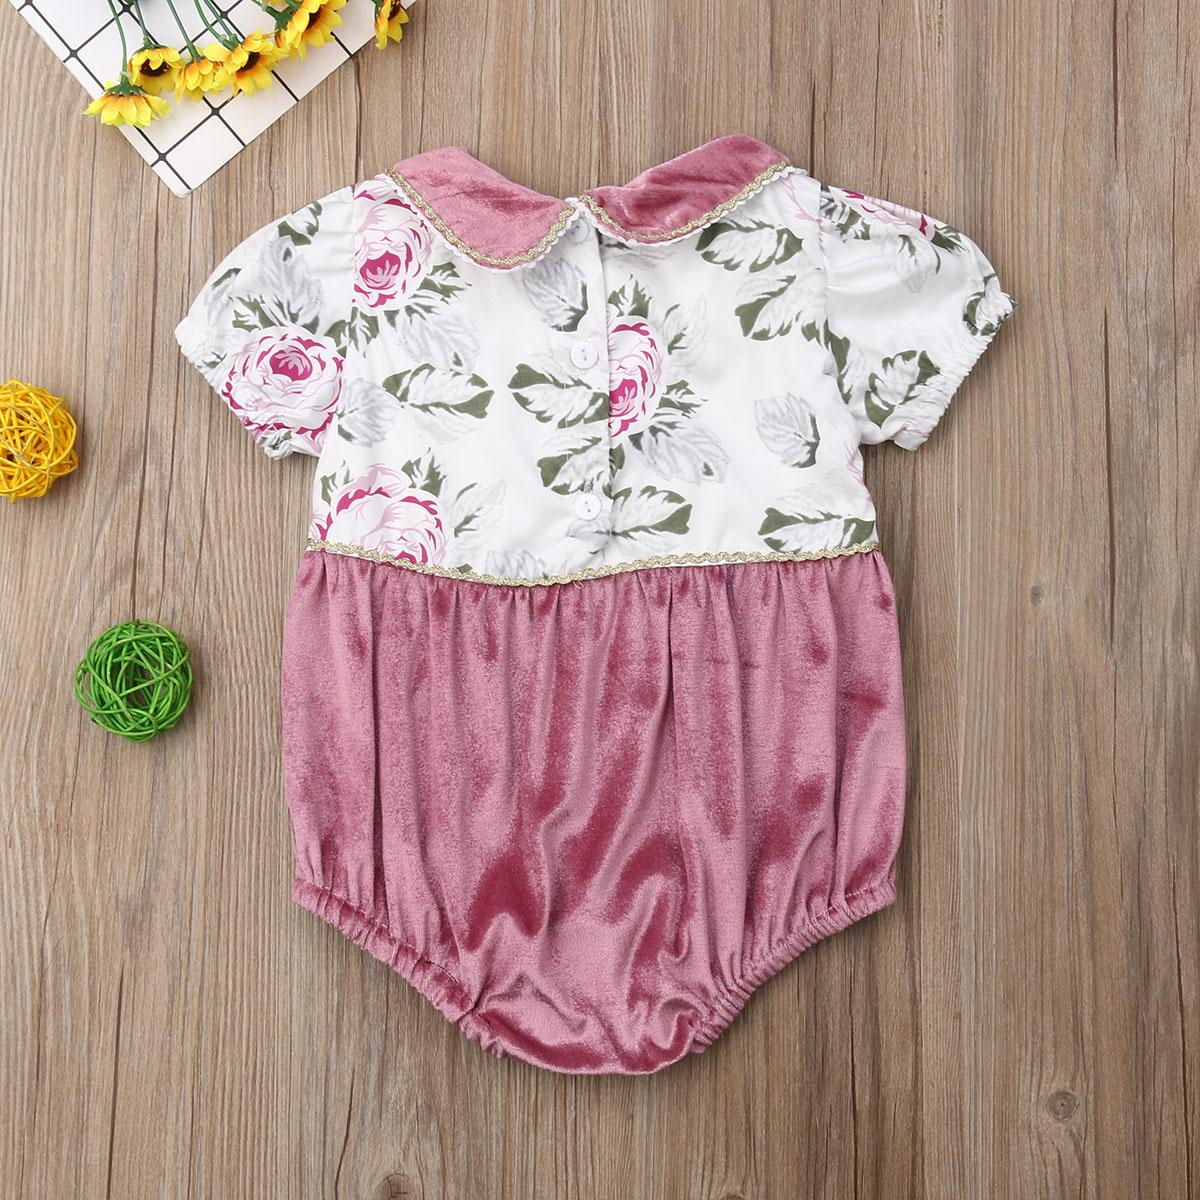 0-24M New Summer Cute Infant Baby Kids Girls Floral Jumpsuit Peter Pan Collar Short Sleeve Floral Bodysuit Cotton Outfit Set